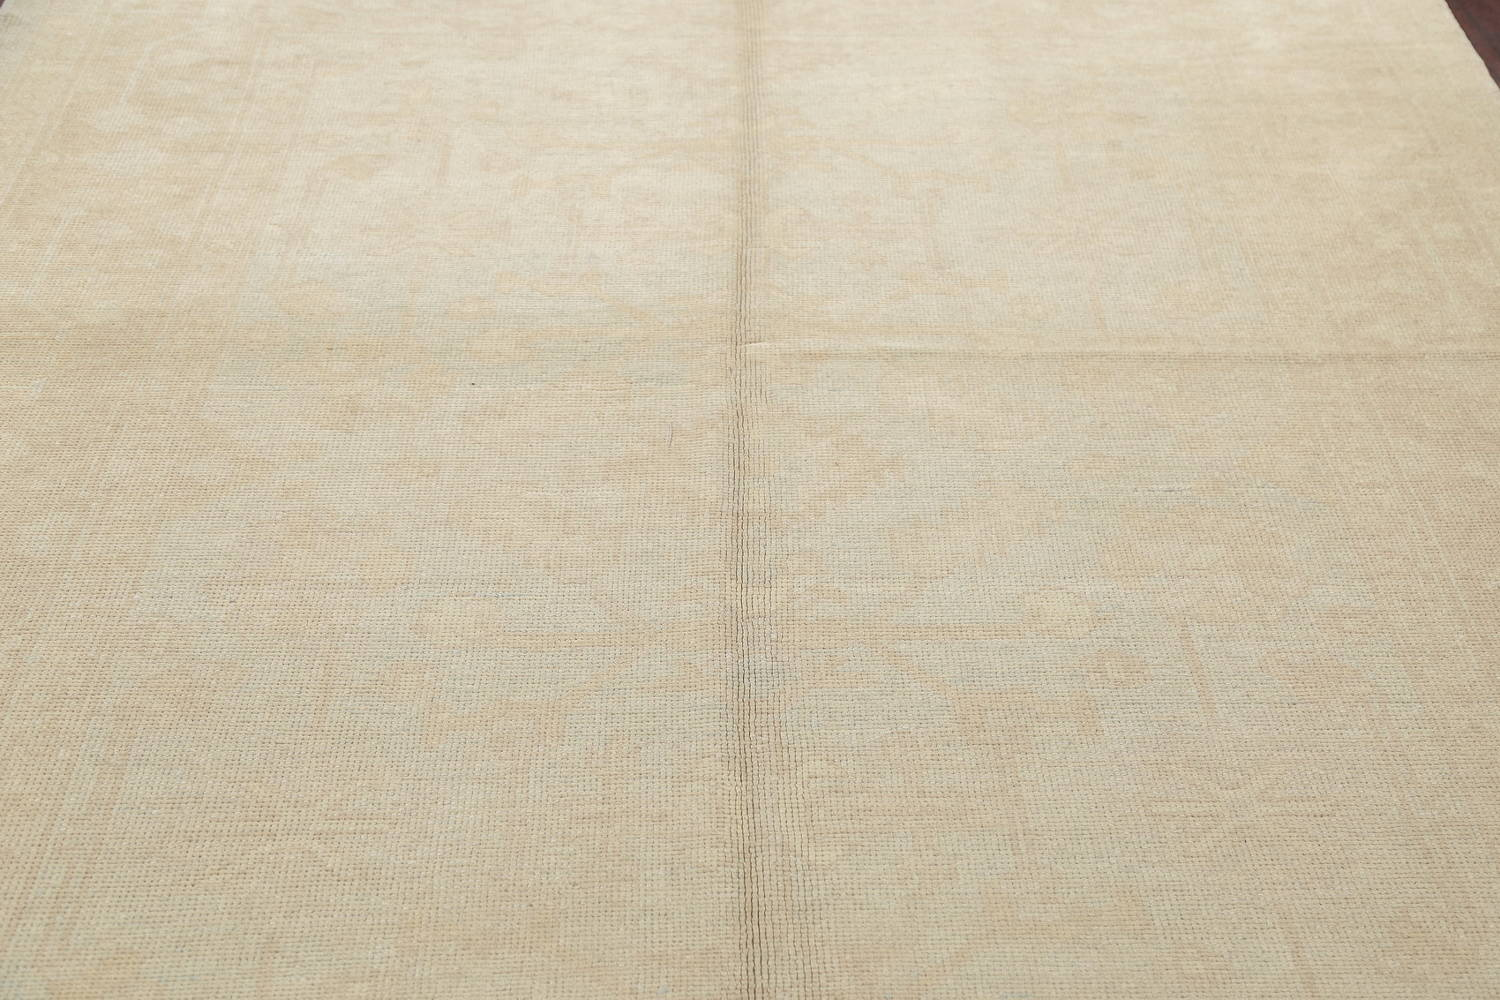 Vegetable Dye Muted Pale Blue Oushak Turkish Hand-Knotted Runner Rug 7x17 image 11